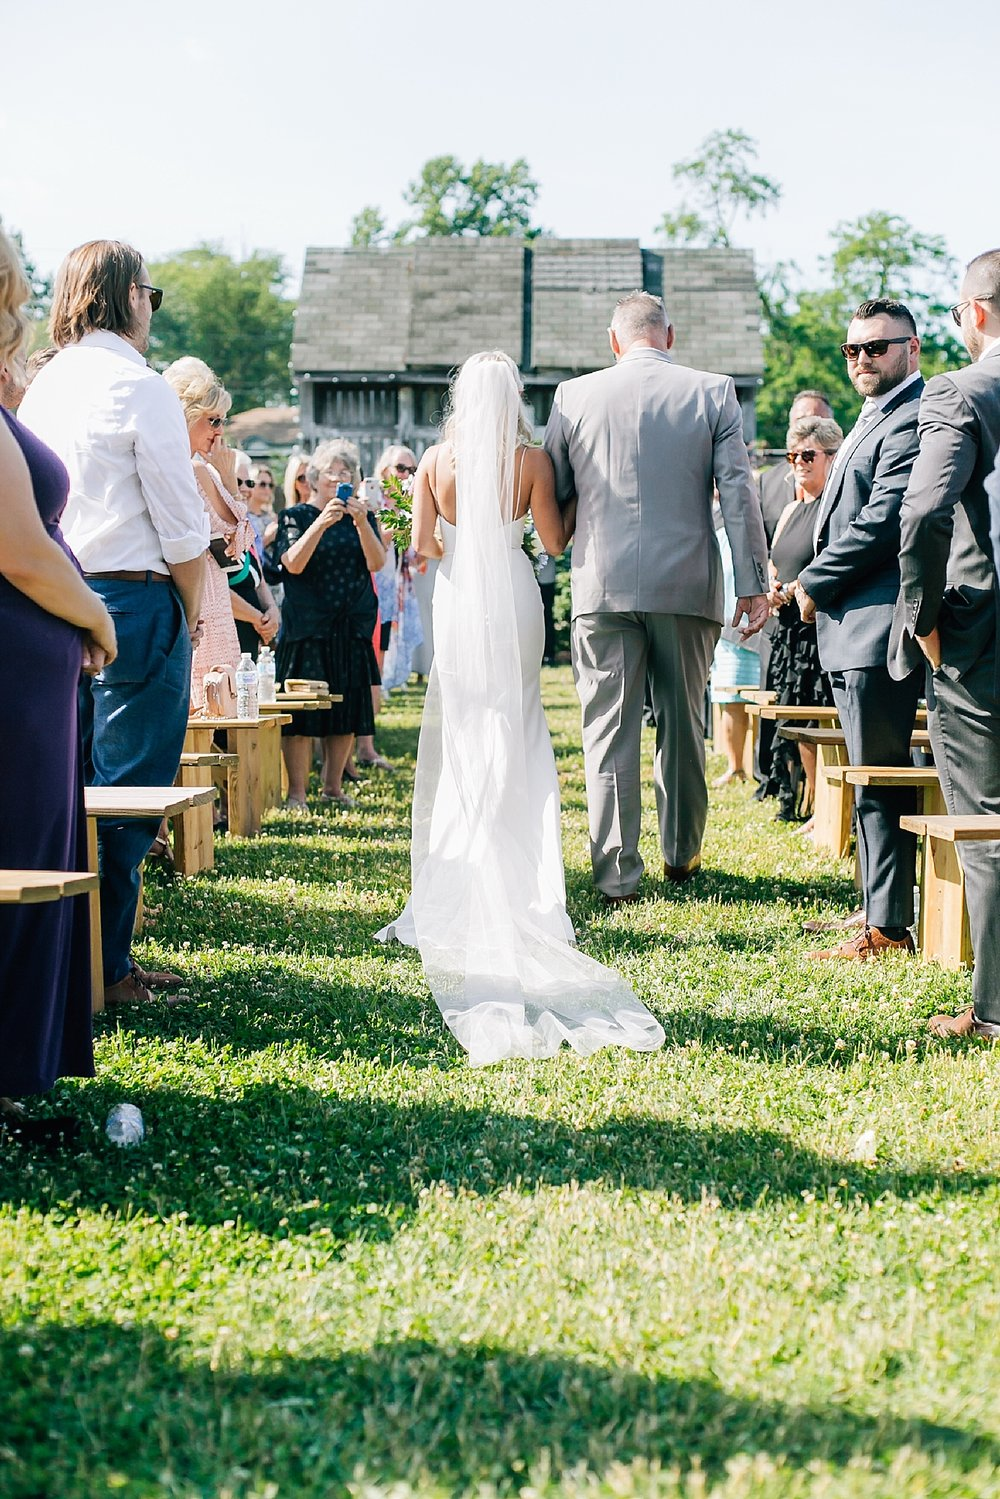 A Unique Outdoor Summer Wedding at Bast Brothers Garden Center by Magdalena Studios_0034.jpg